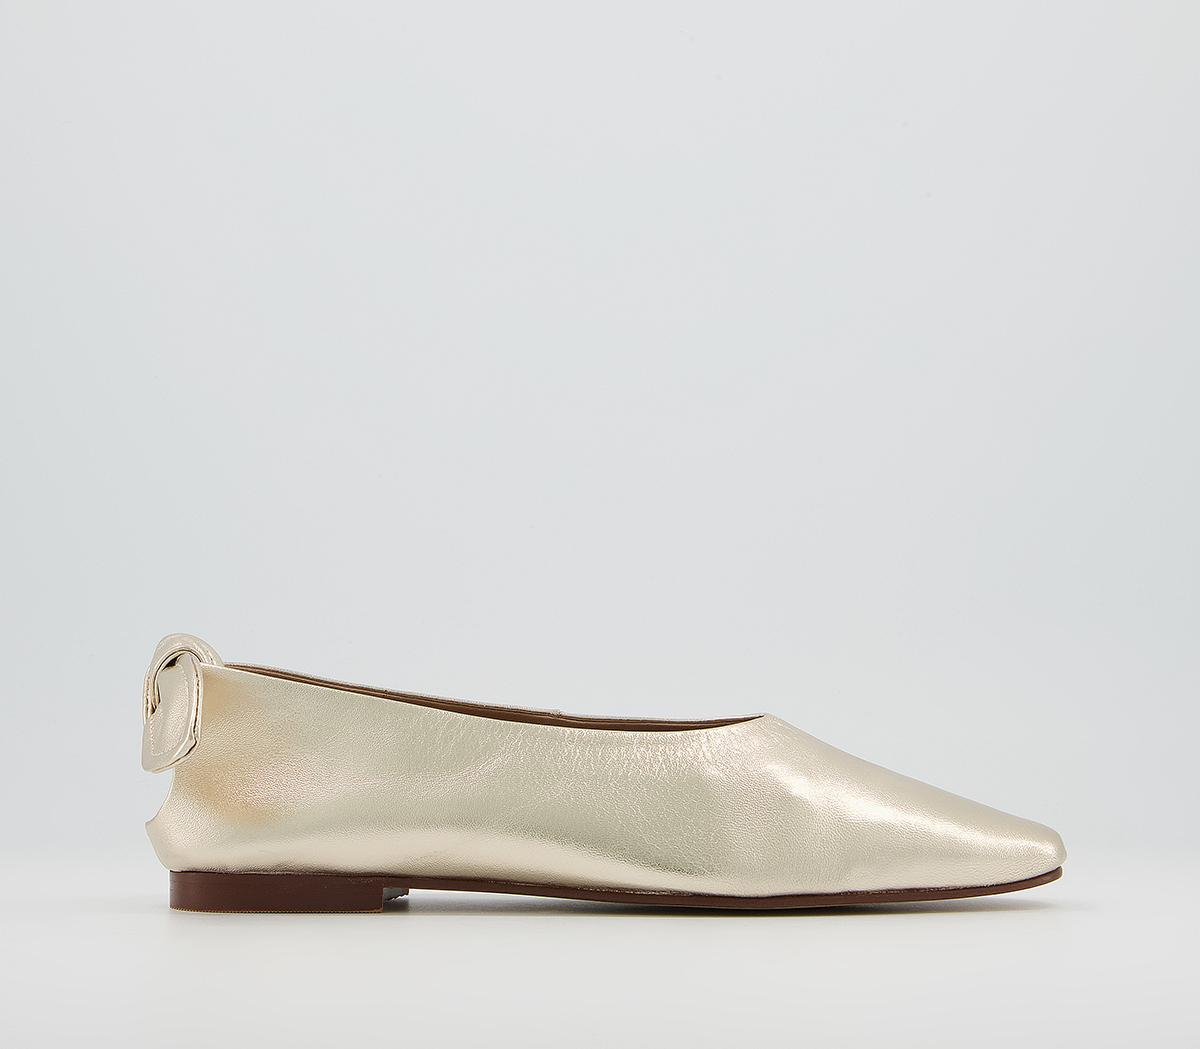 Fleeting Soft Bow Square Ballet Shoes